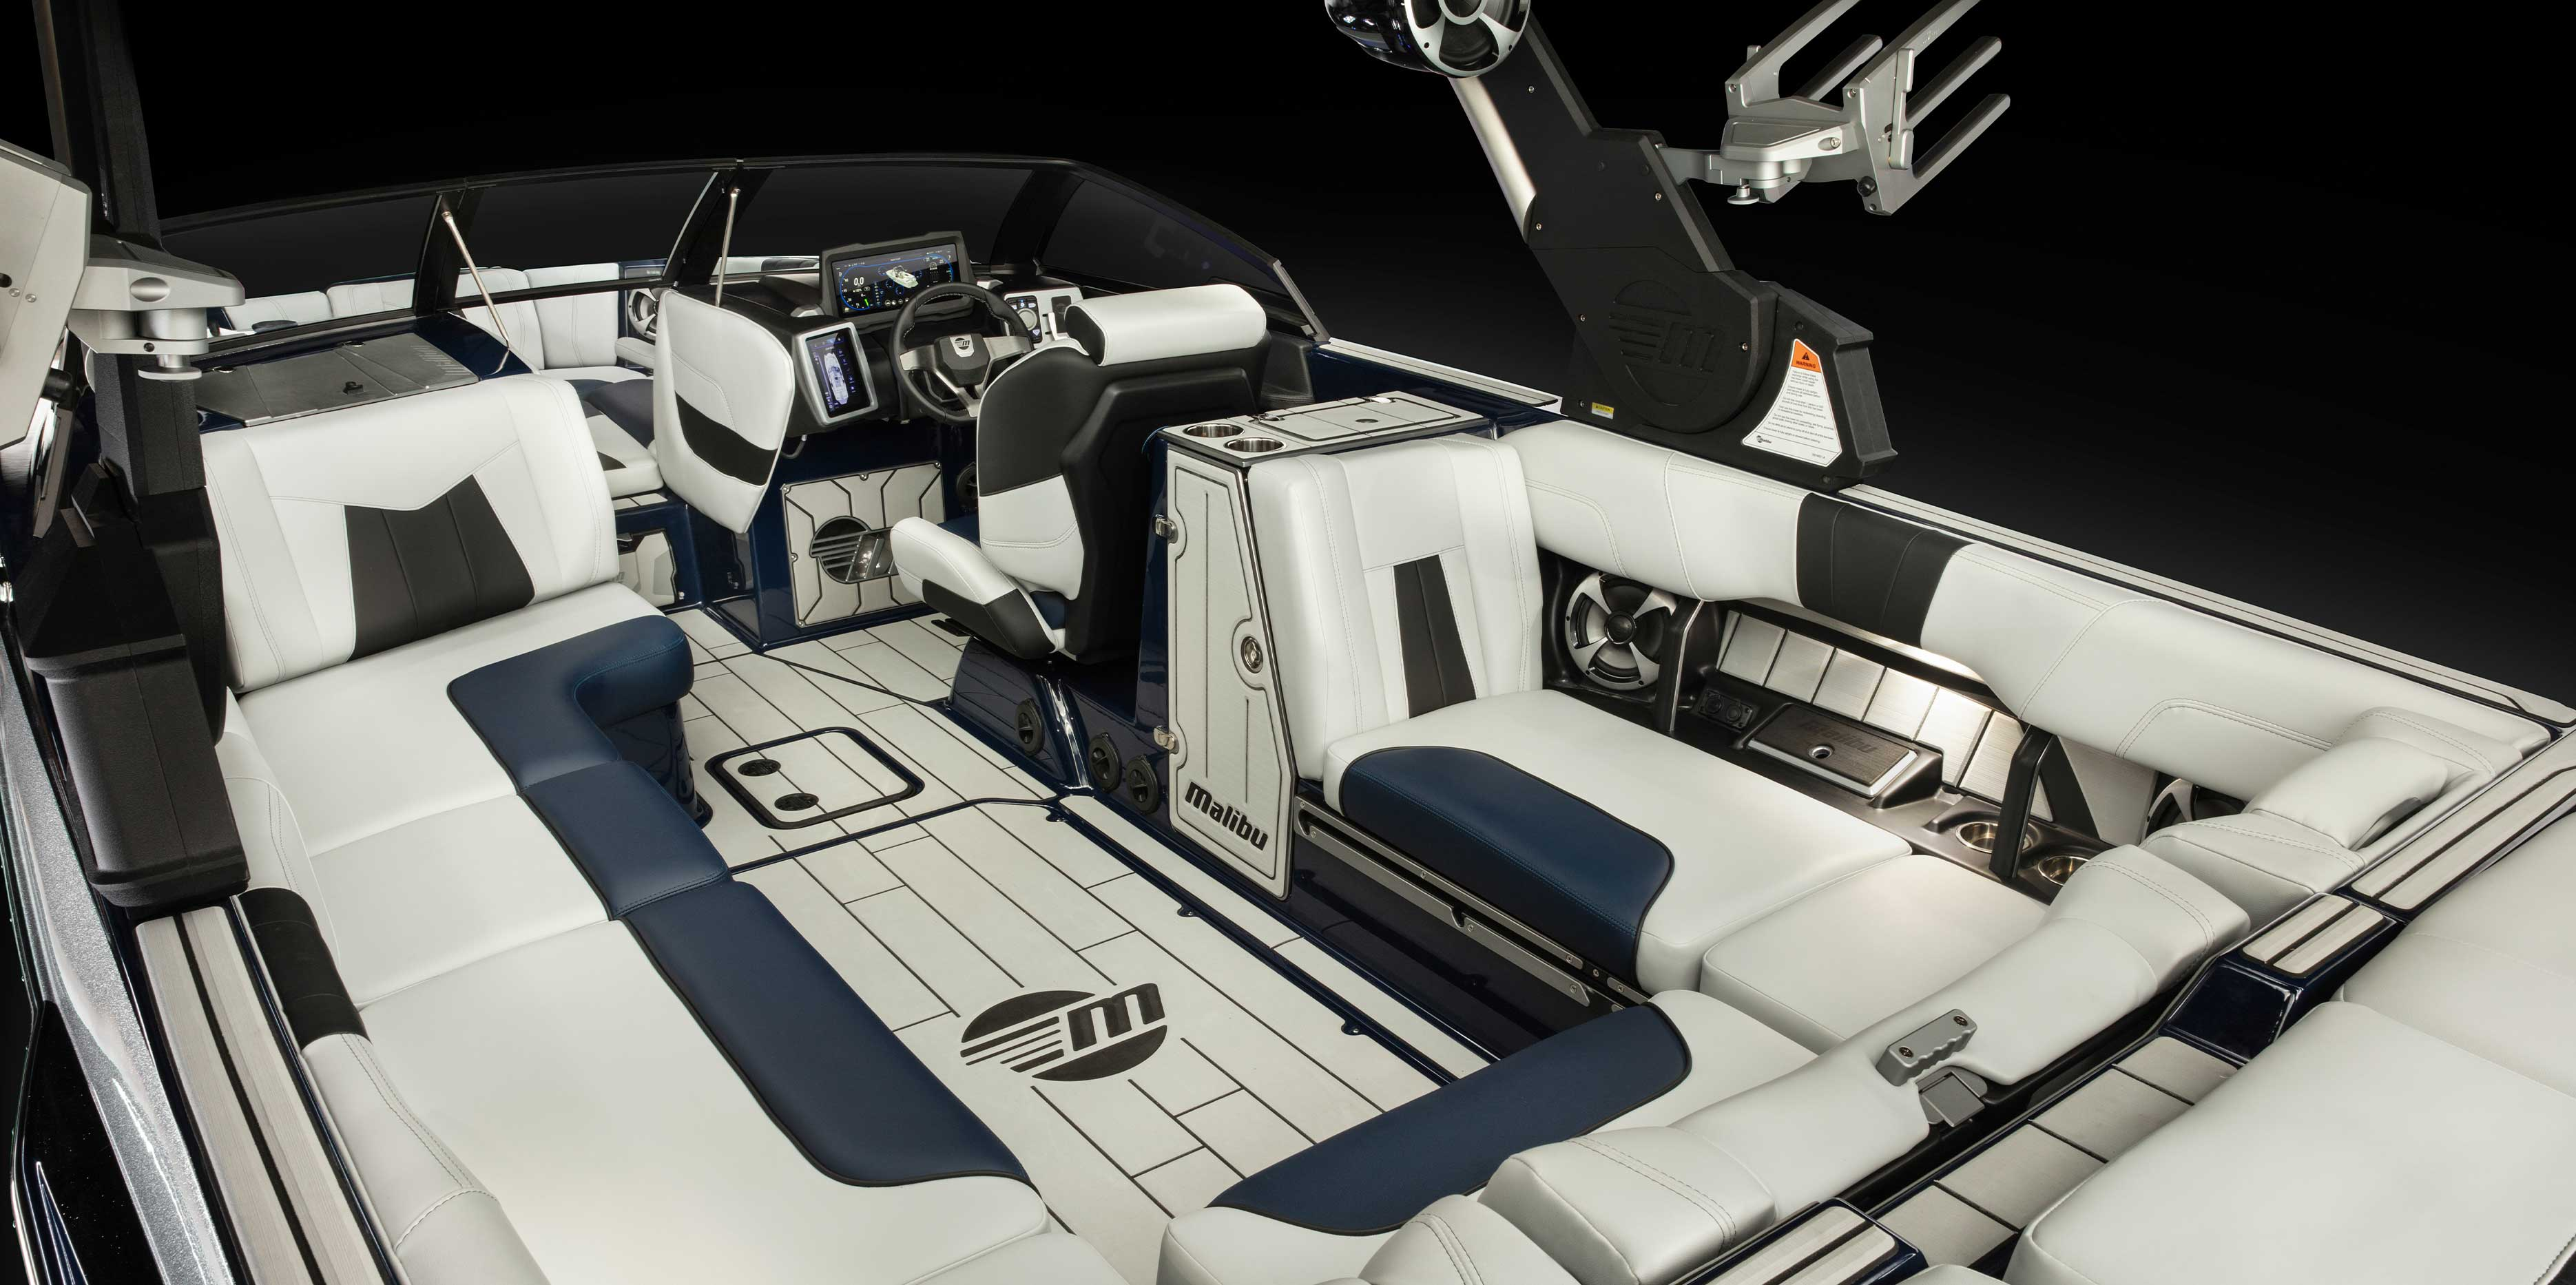 Malibu 24 MXZ interior layout